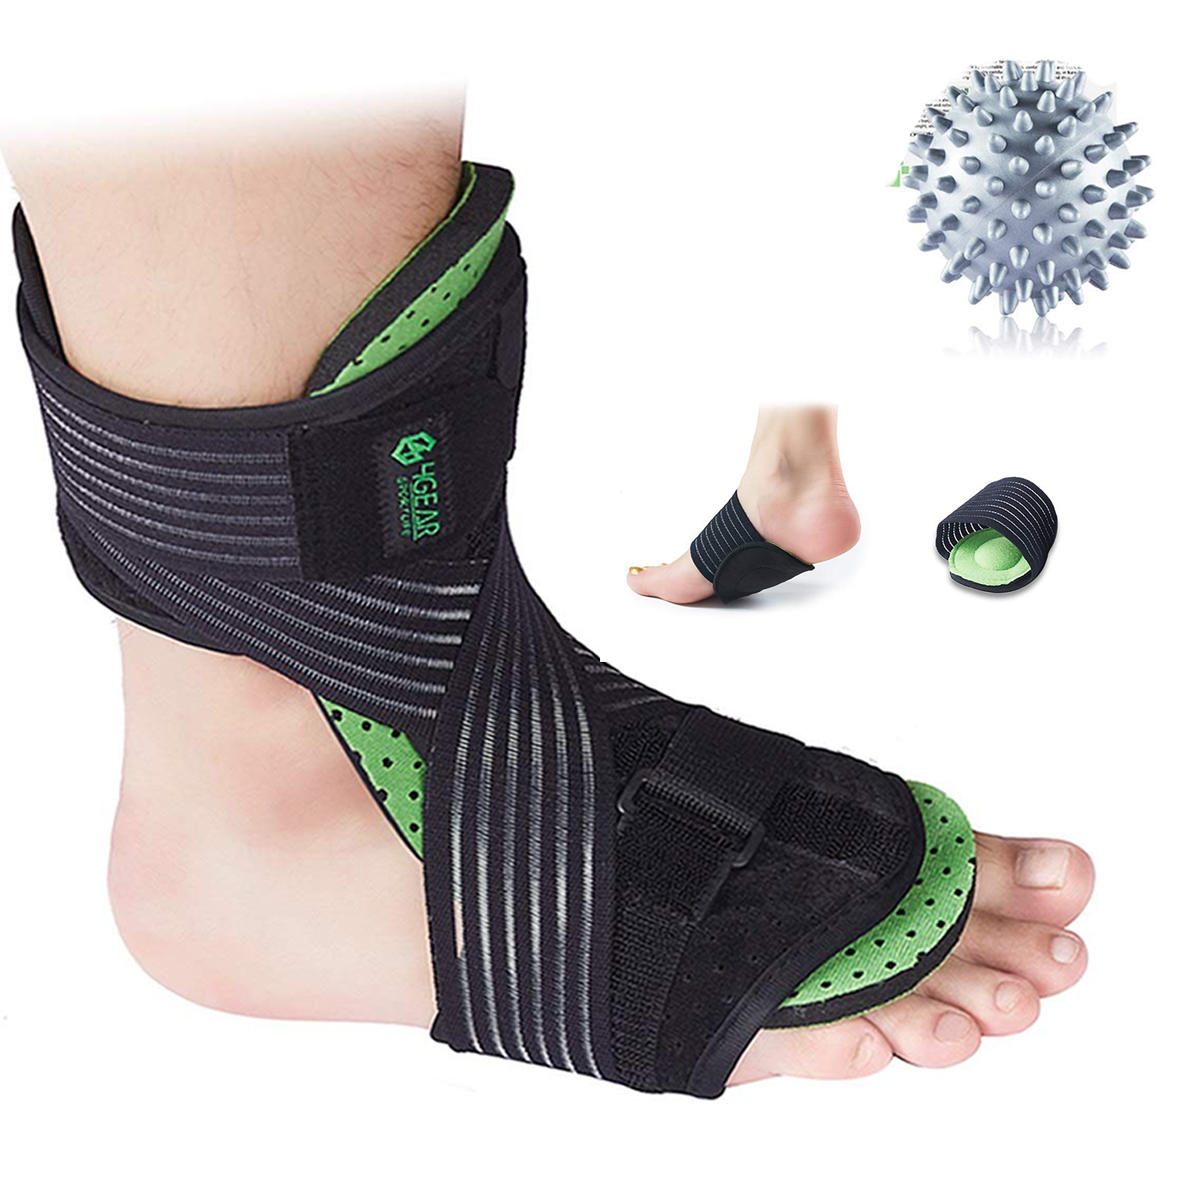 Ankle Support Brace Compression Tendon Pain Relief Strap Foot Sprains Injury Wrap